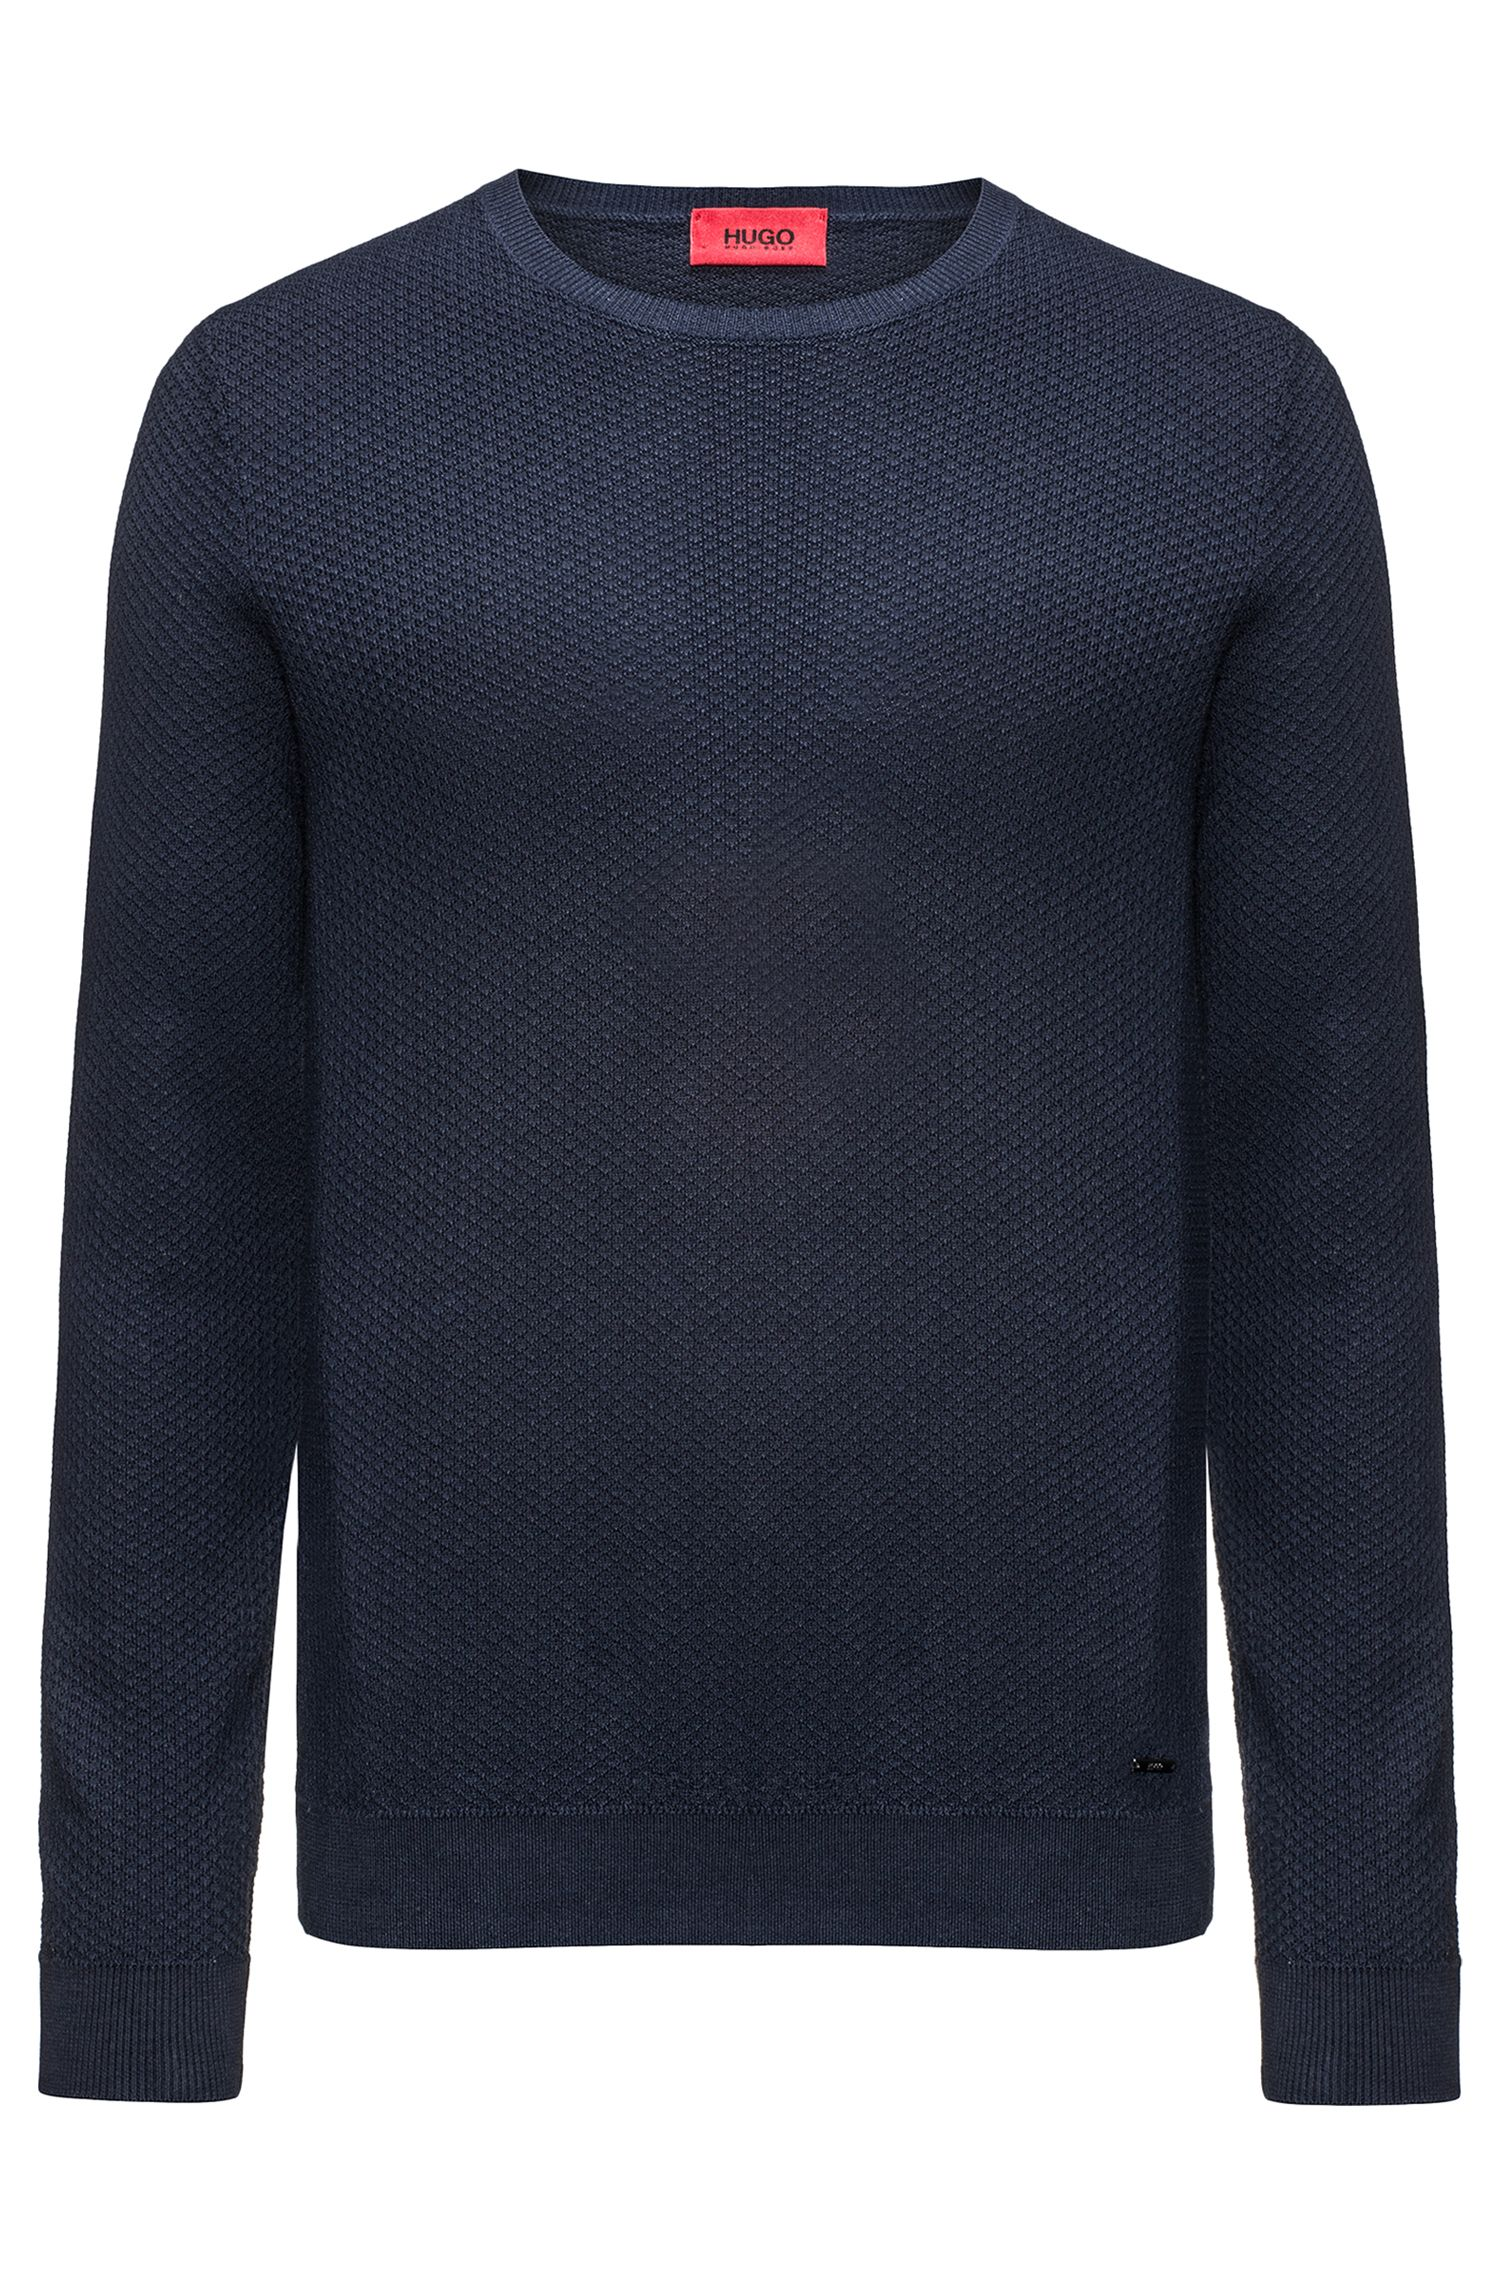 Crew-neck sweater in knitted cotton piqué